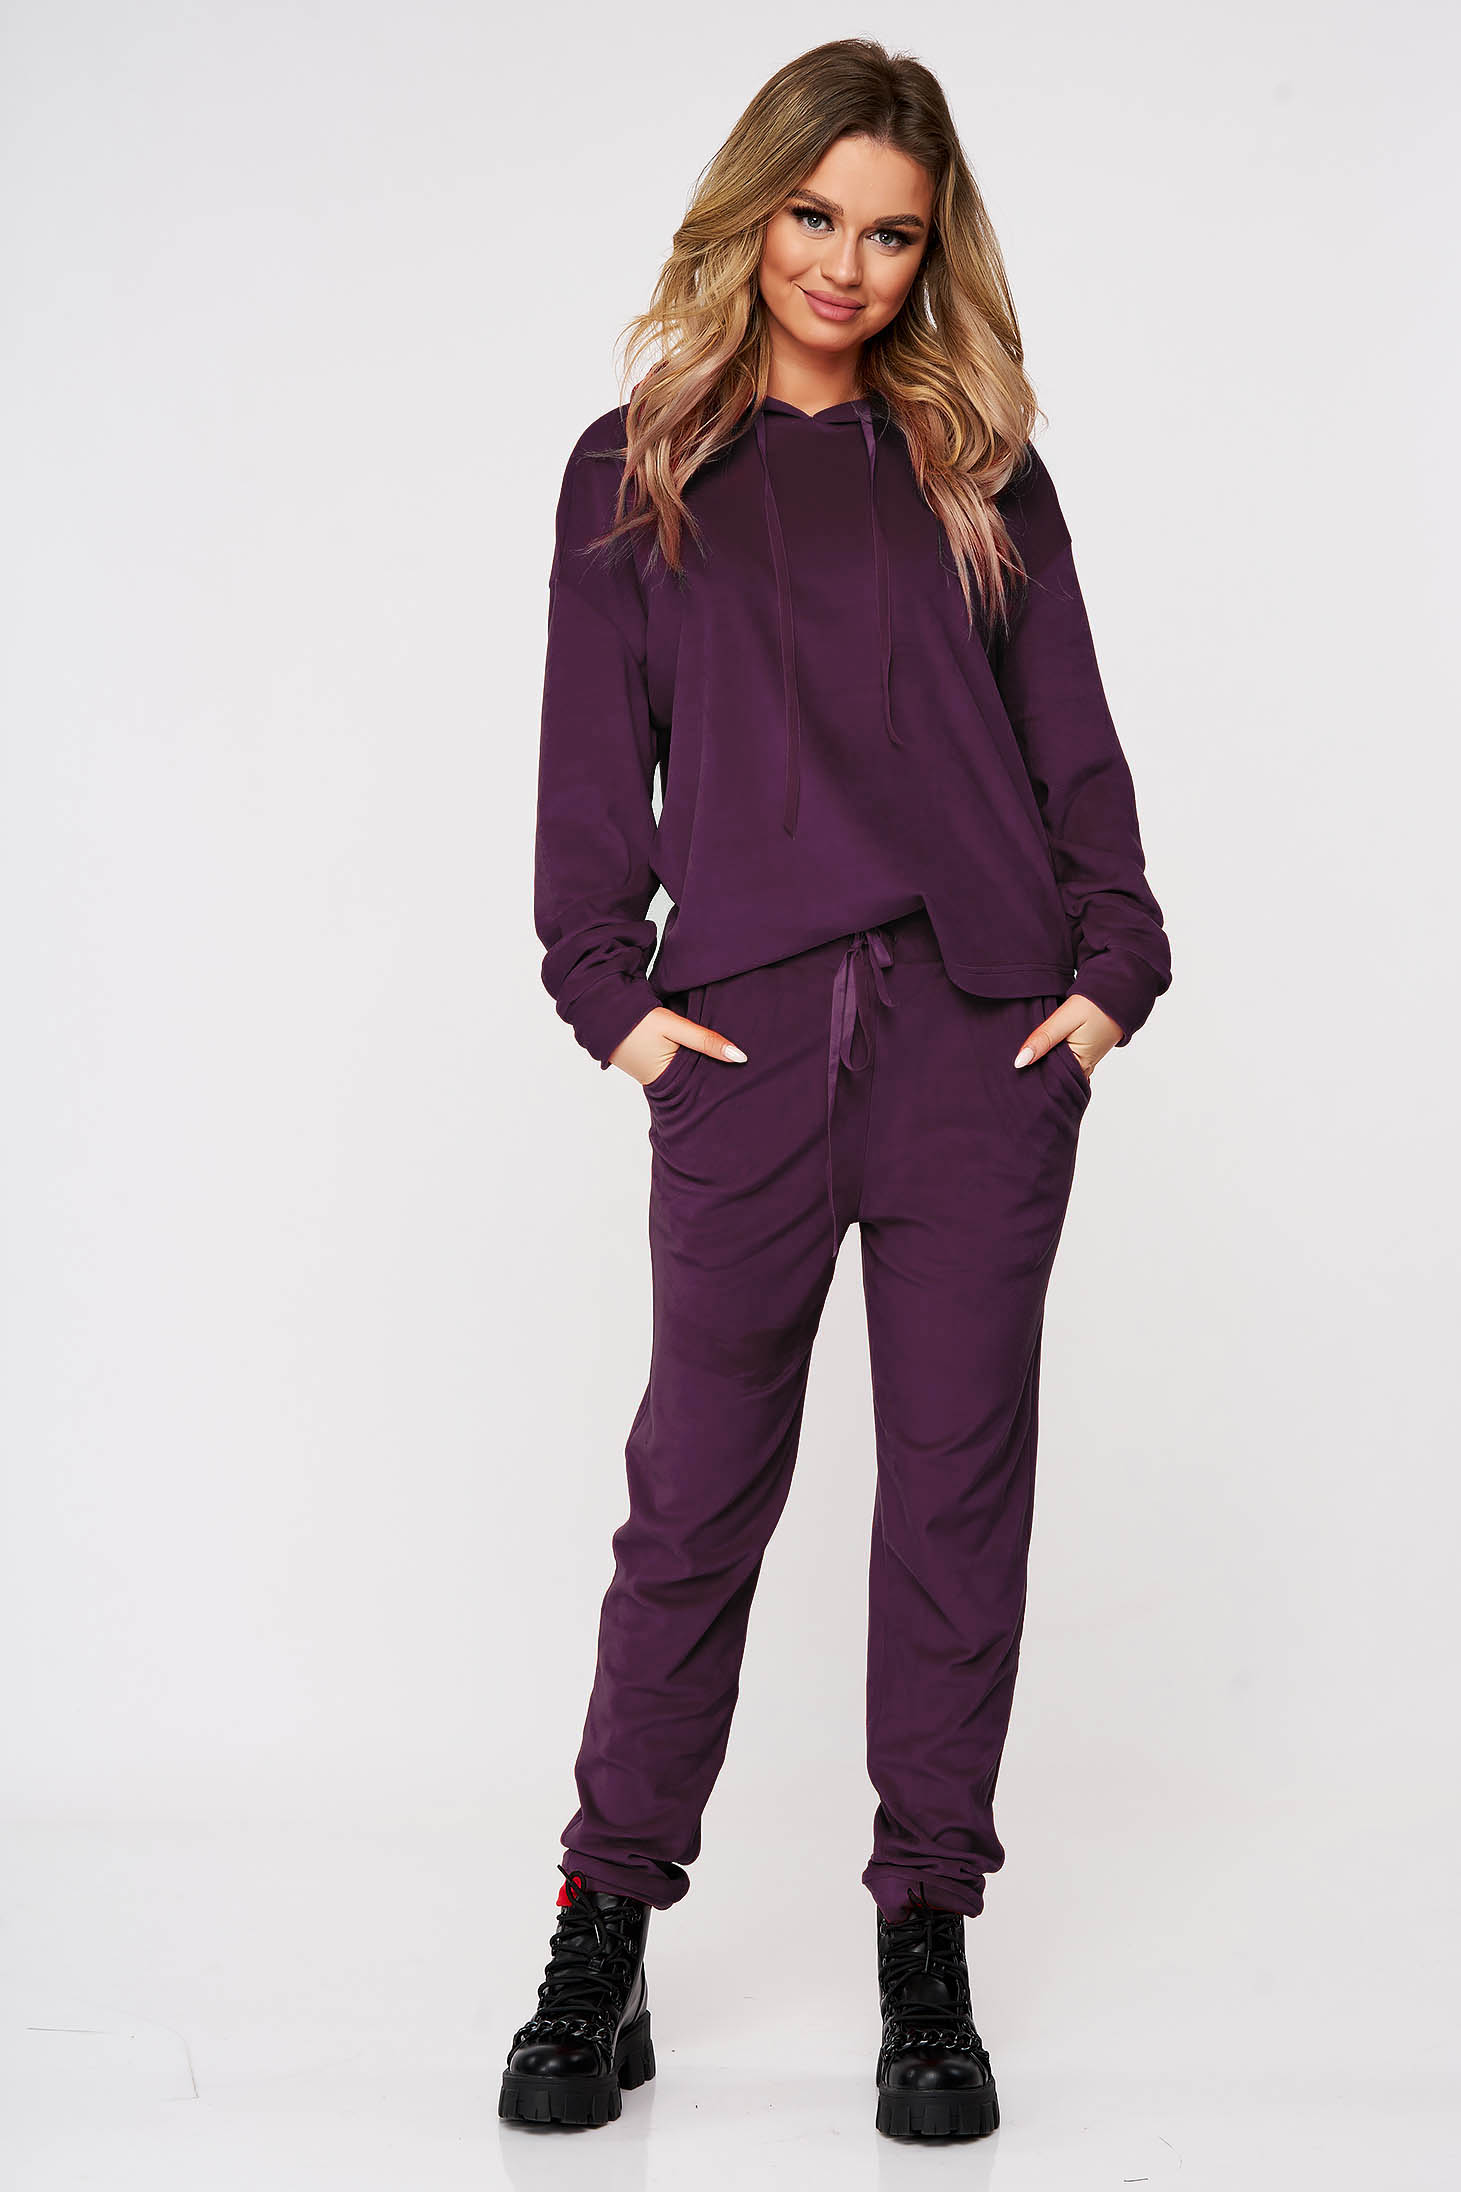 Lightpurple casual sport 2 pieces 2 pieces loose fit with undetachable hood